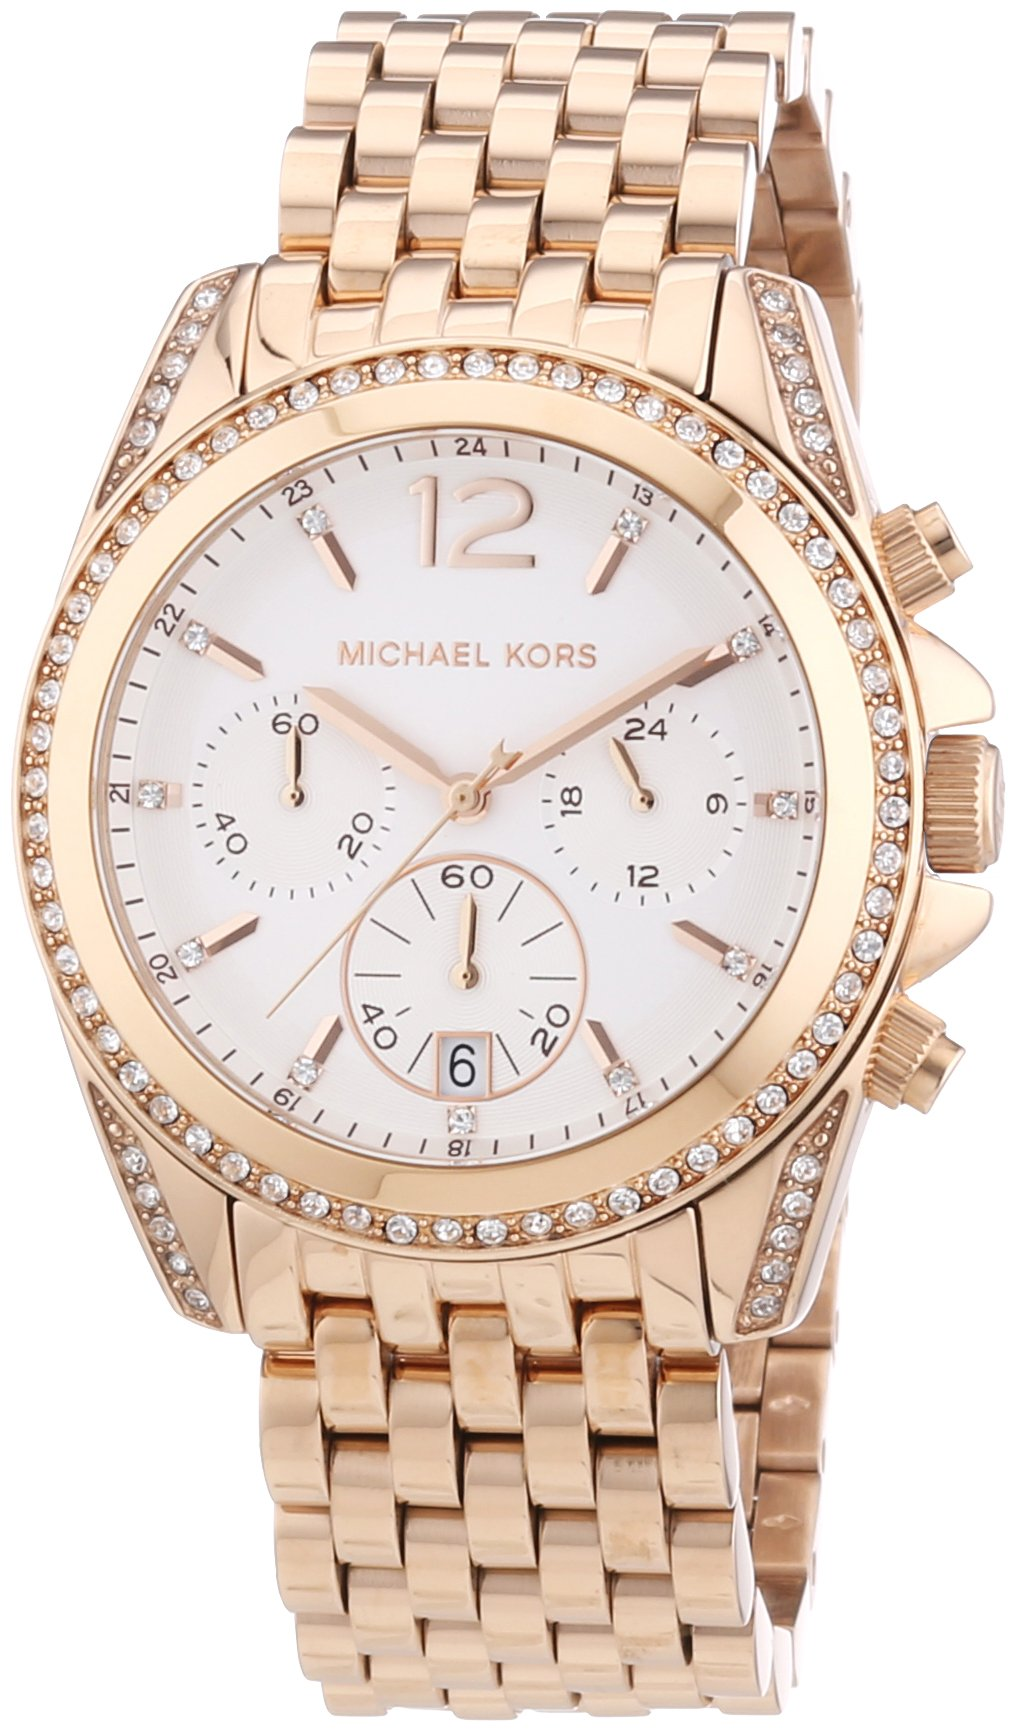 Michael Kors Watches Pressley Watch (Rose Gold)